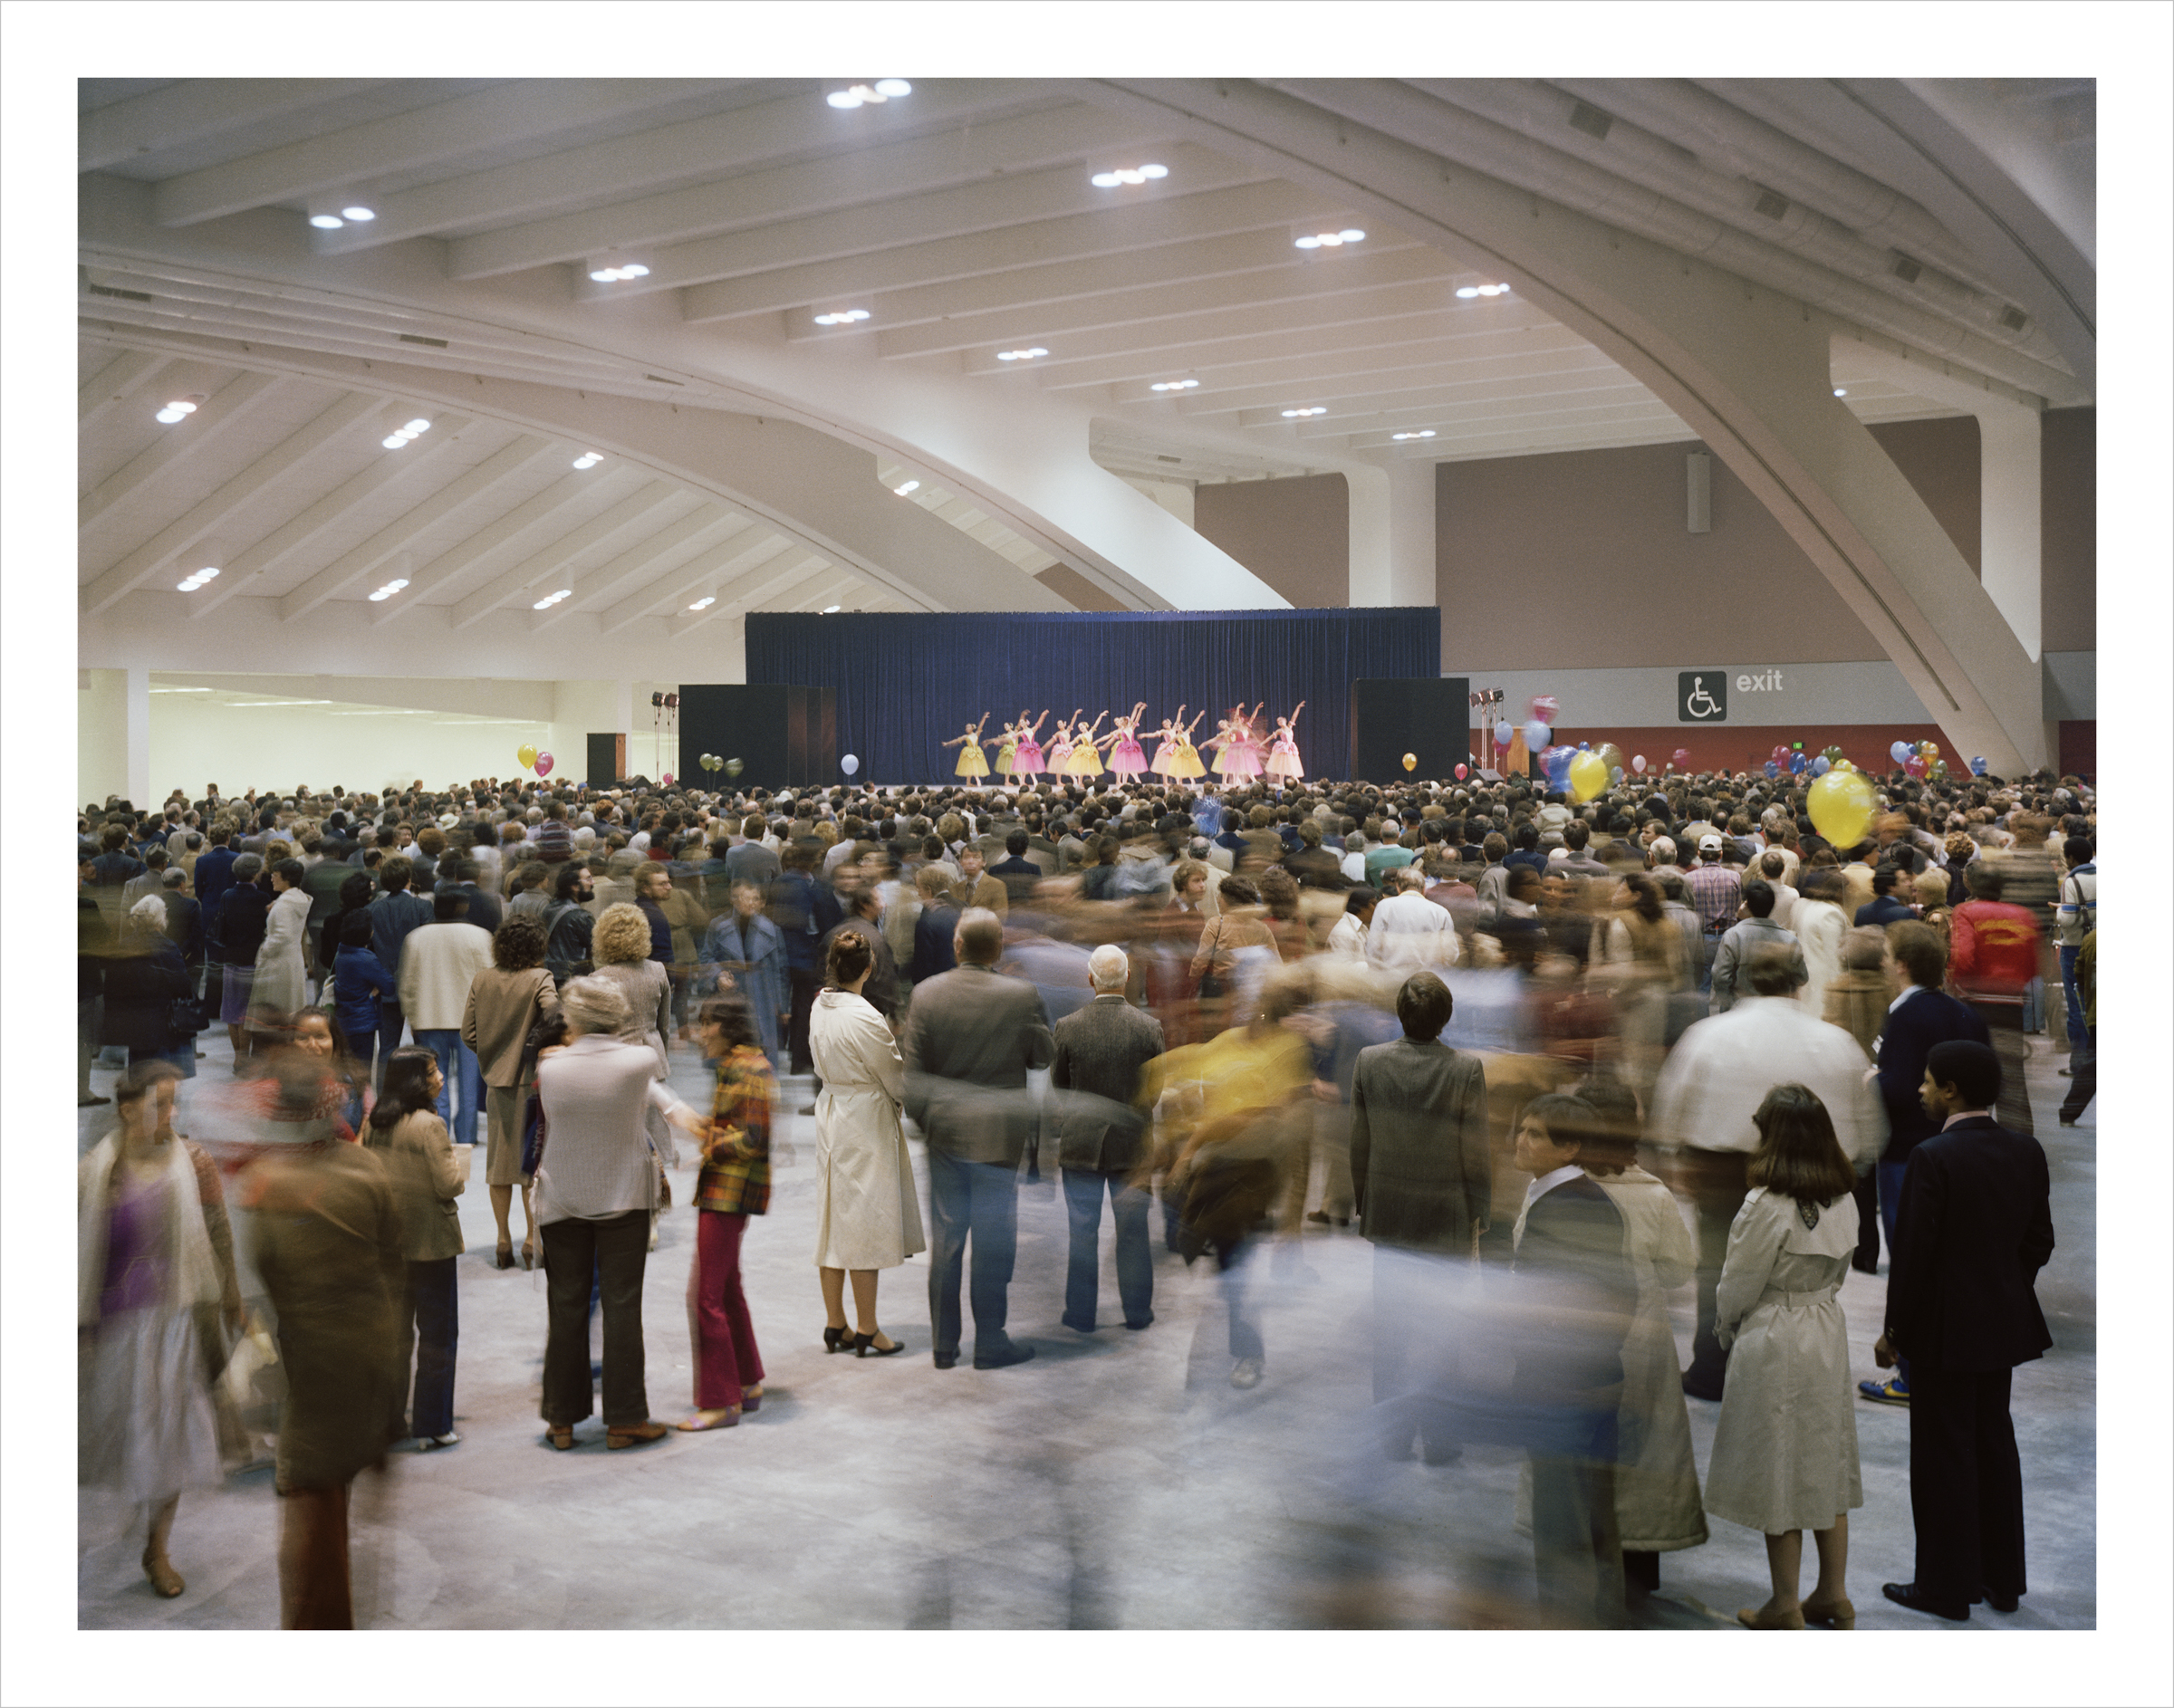 San Francisco Ballet performing on opening days for the Moscone Center, 1981 Archival Pigment Print, 2016 16 x 20 inches, edition of 5 20 x 24 inches, edition of 2 30 x 40 inches, edition of 2